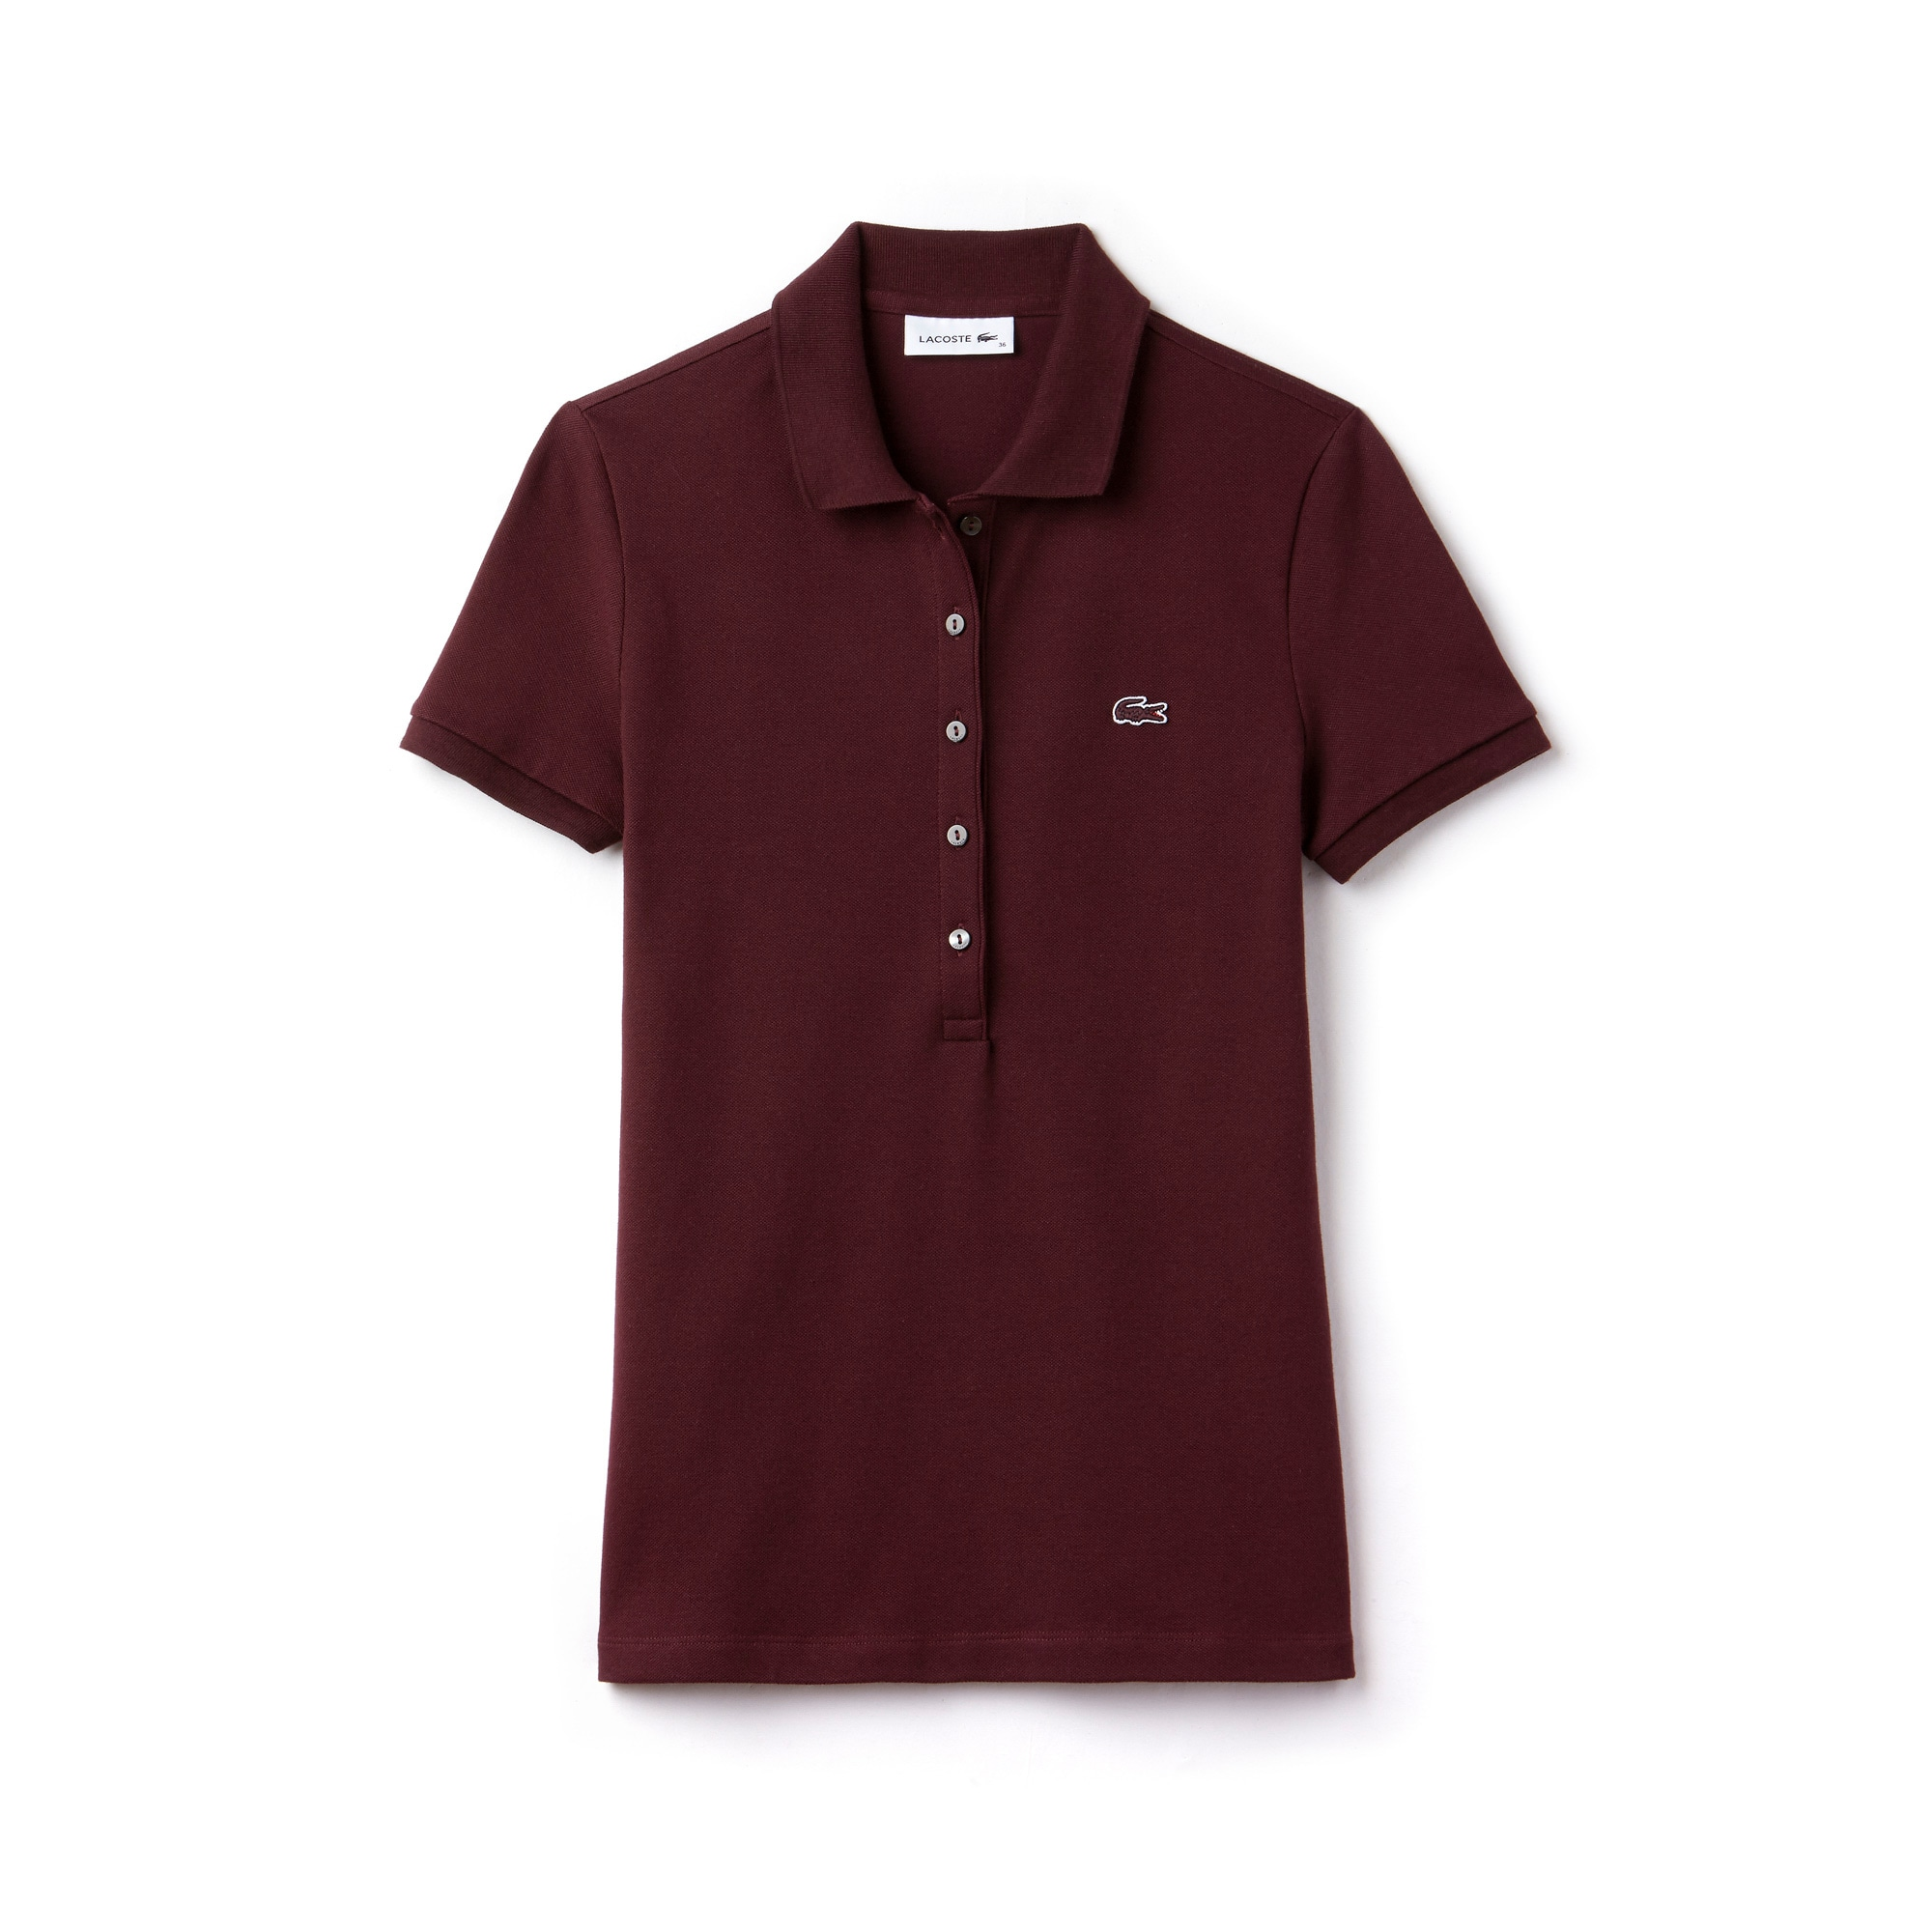 LACOSTE Slim Fit Damen-Poloshirt aus Mini-Piqué mit Stretch